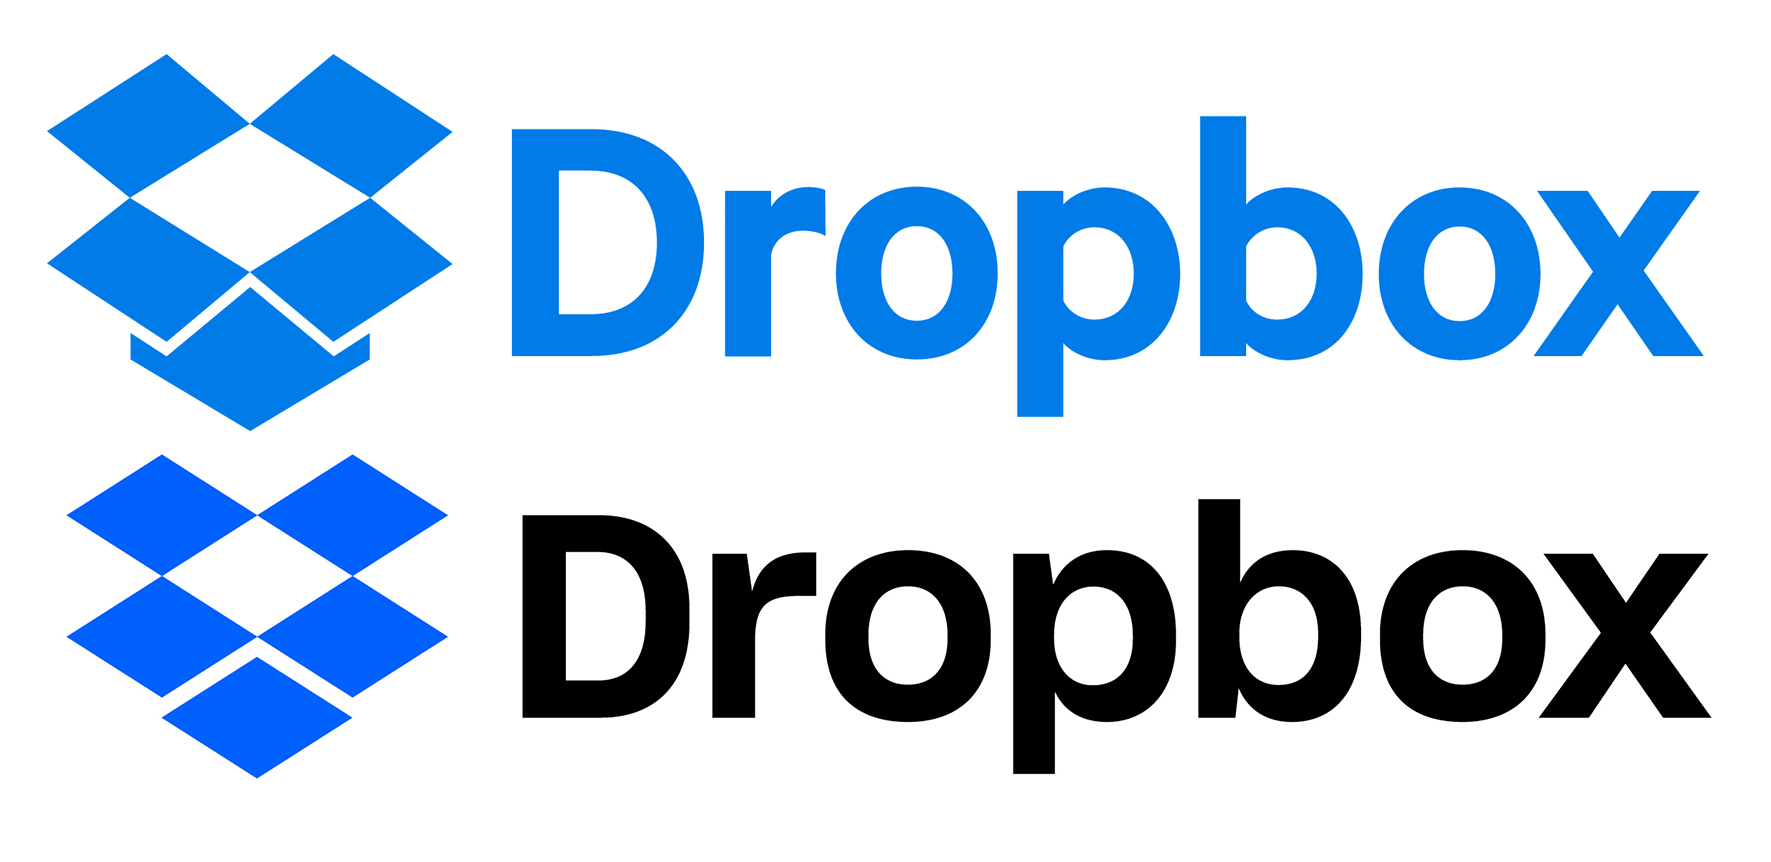 Dropbox brand update streamlines its logo and takes aim at creatives